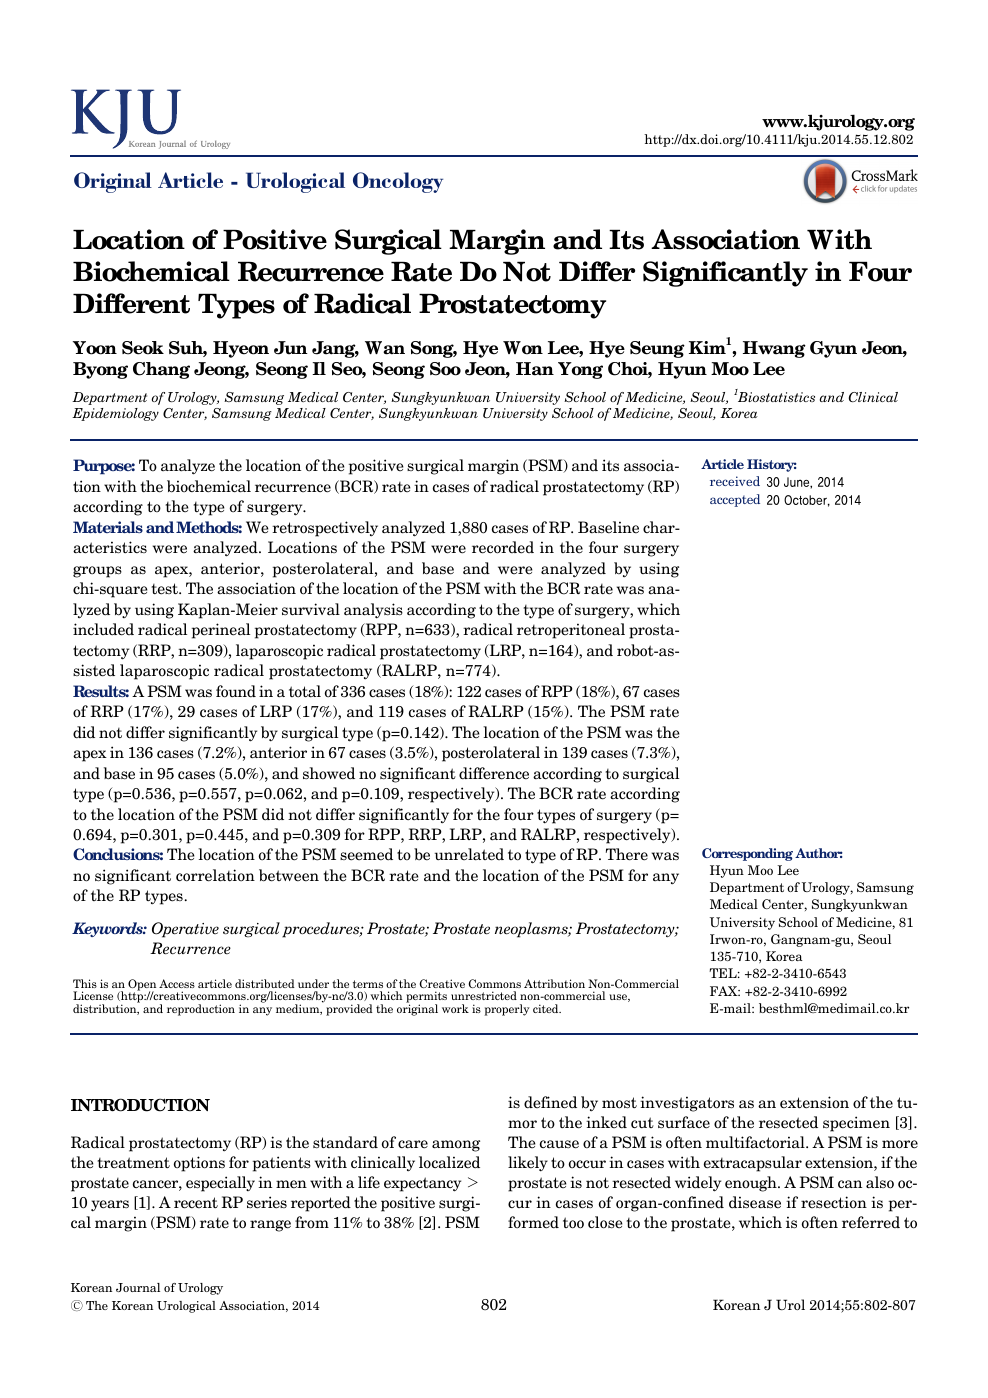 Location Of Positive Surgical Margin And Its Association With